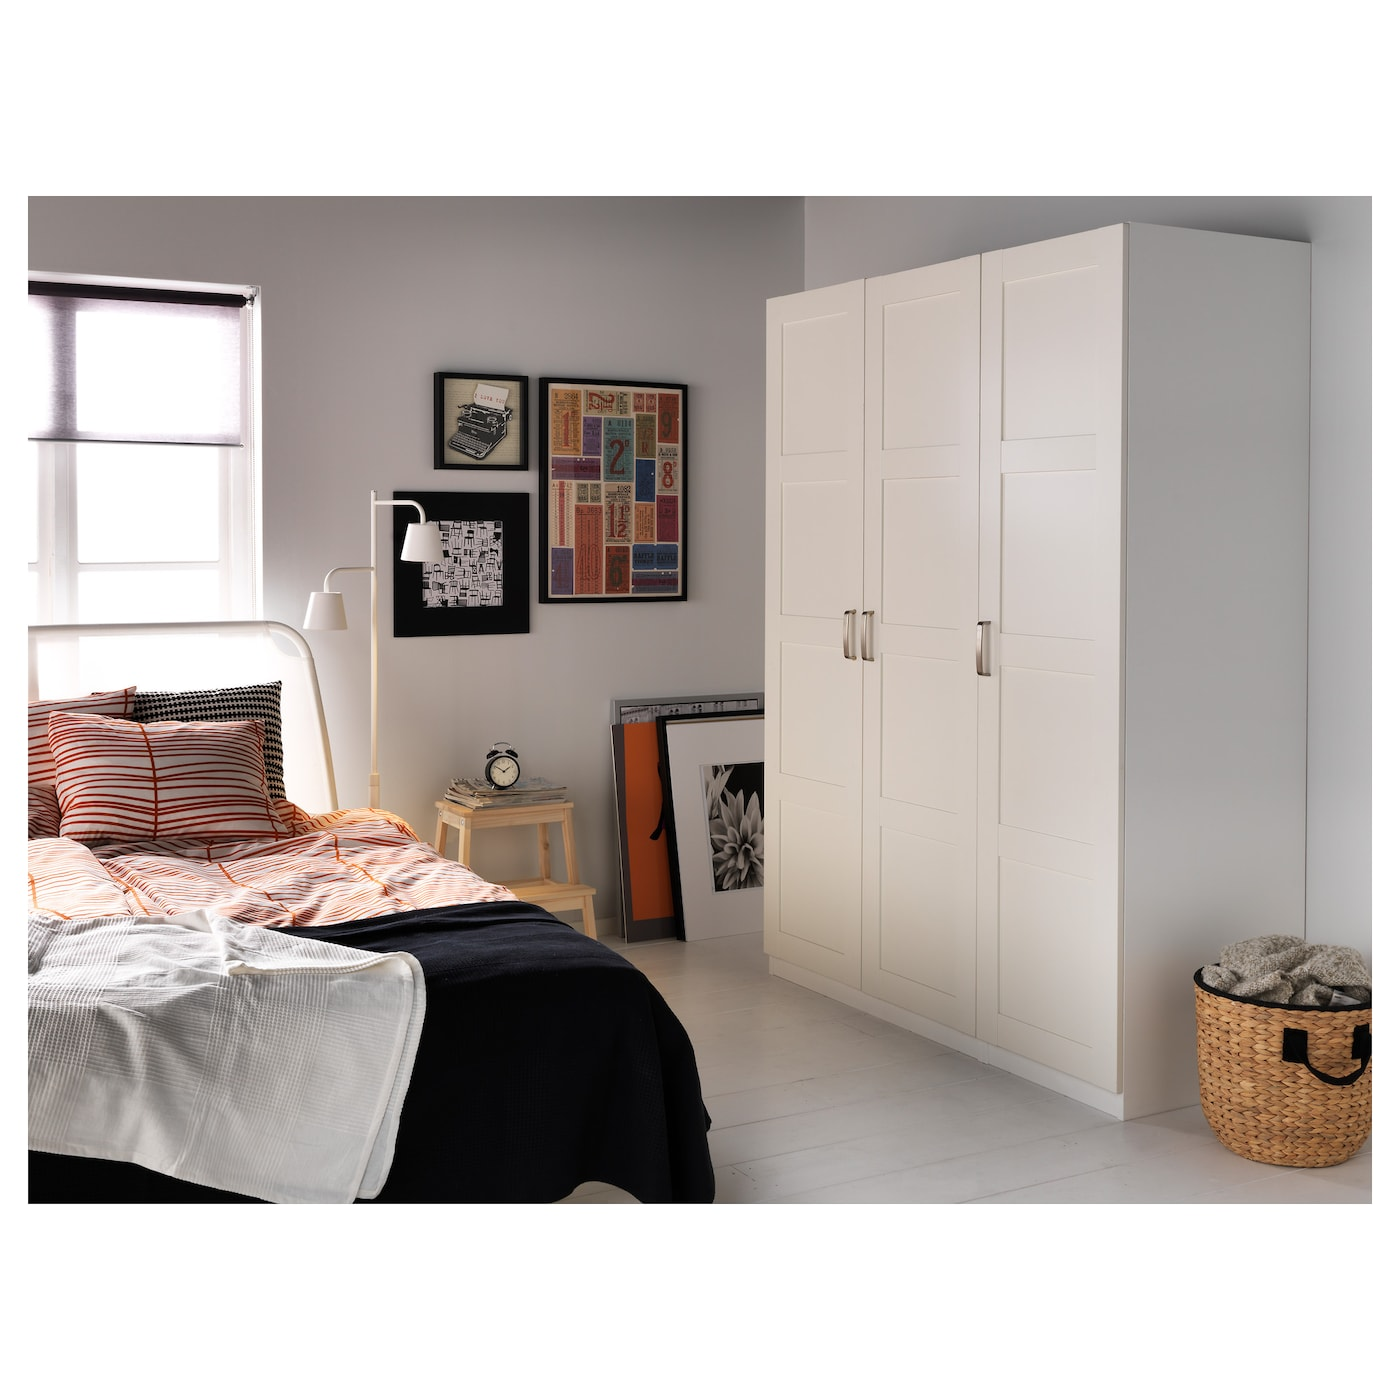 IKEA BERGSBO door 10 year guarantee. Read about the terms in the guarantee brochure.